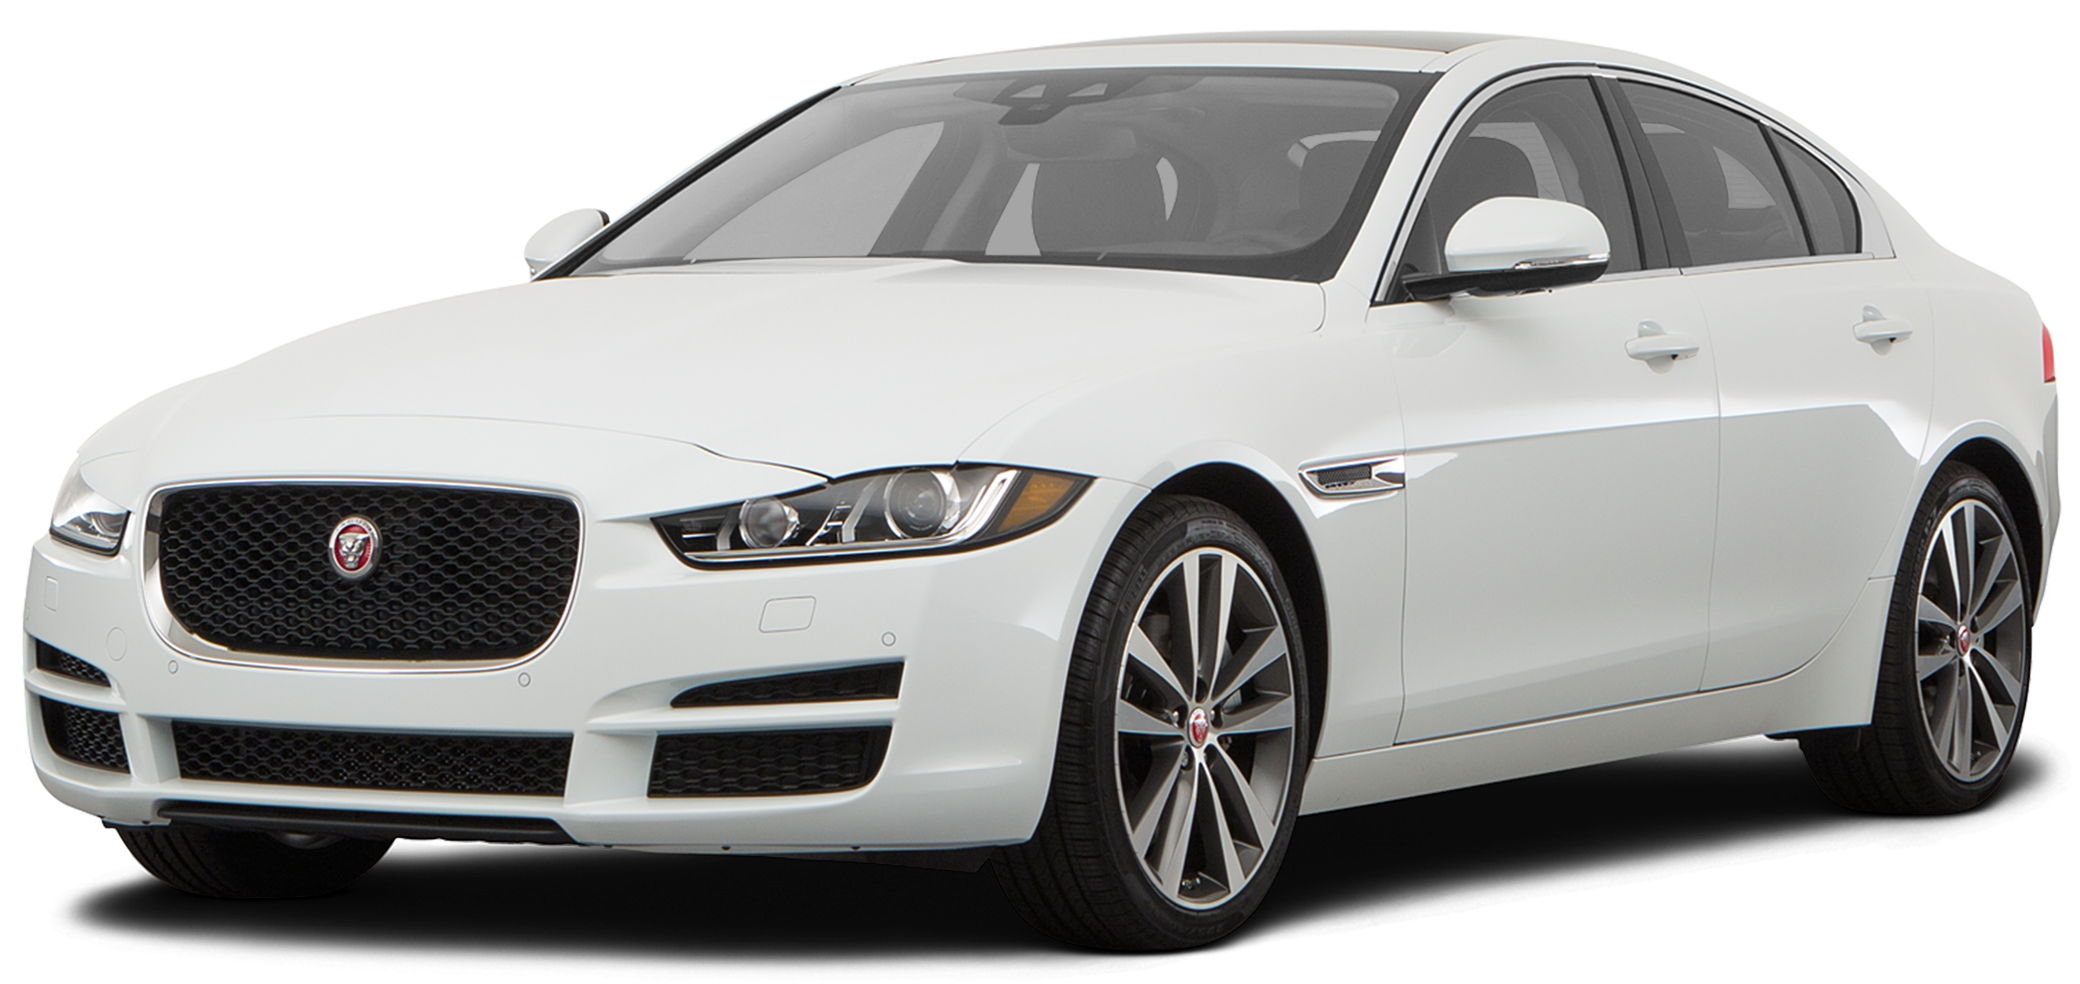 2019 Jaguar XE Incentives, Specials & Offers in Peabody MA